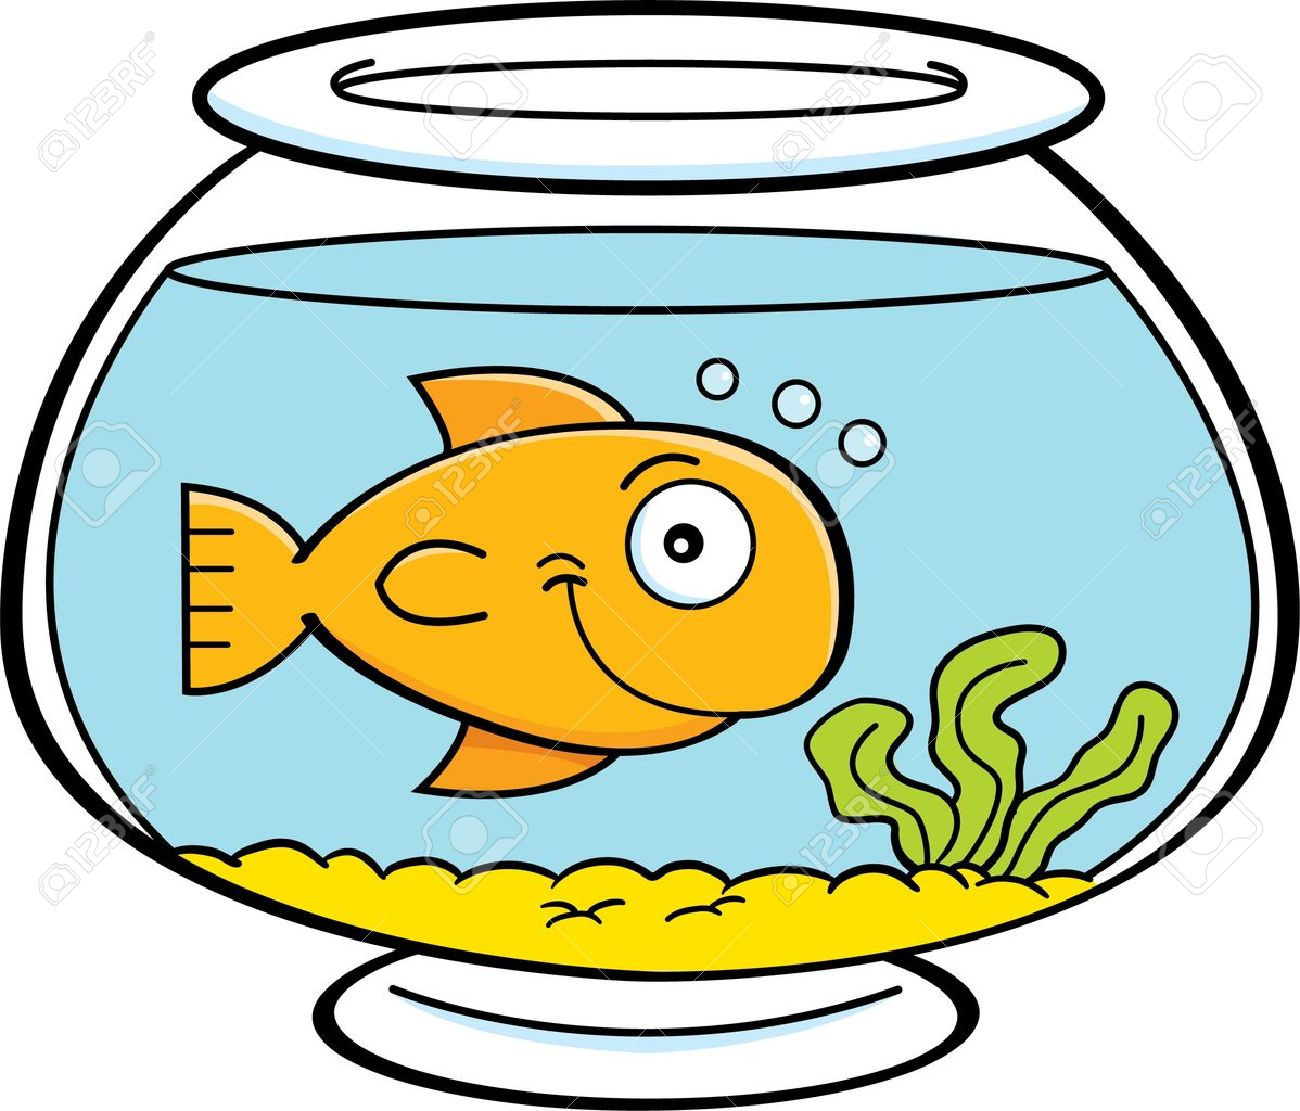 cartoon illustration of a fish in a fish bowl royalty free cliparts rh 123rf com fish bowl clip art for kids fish bowl clip art for kids